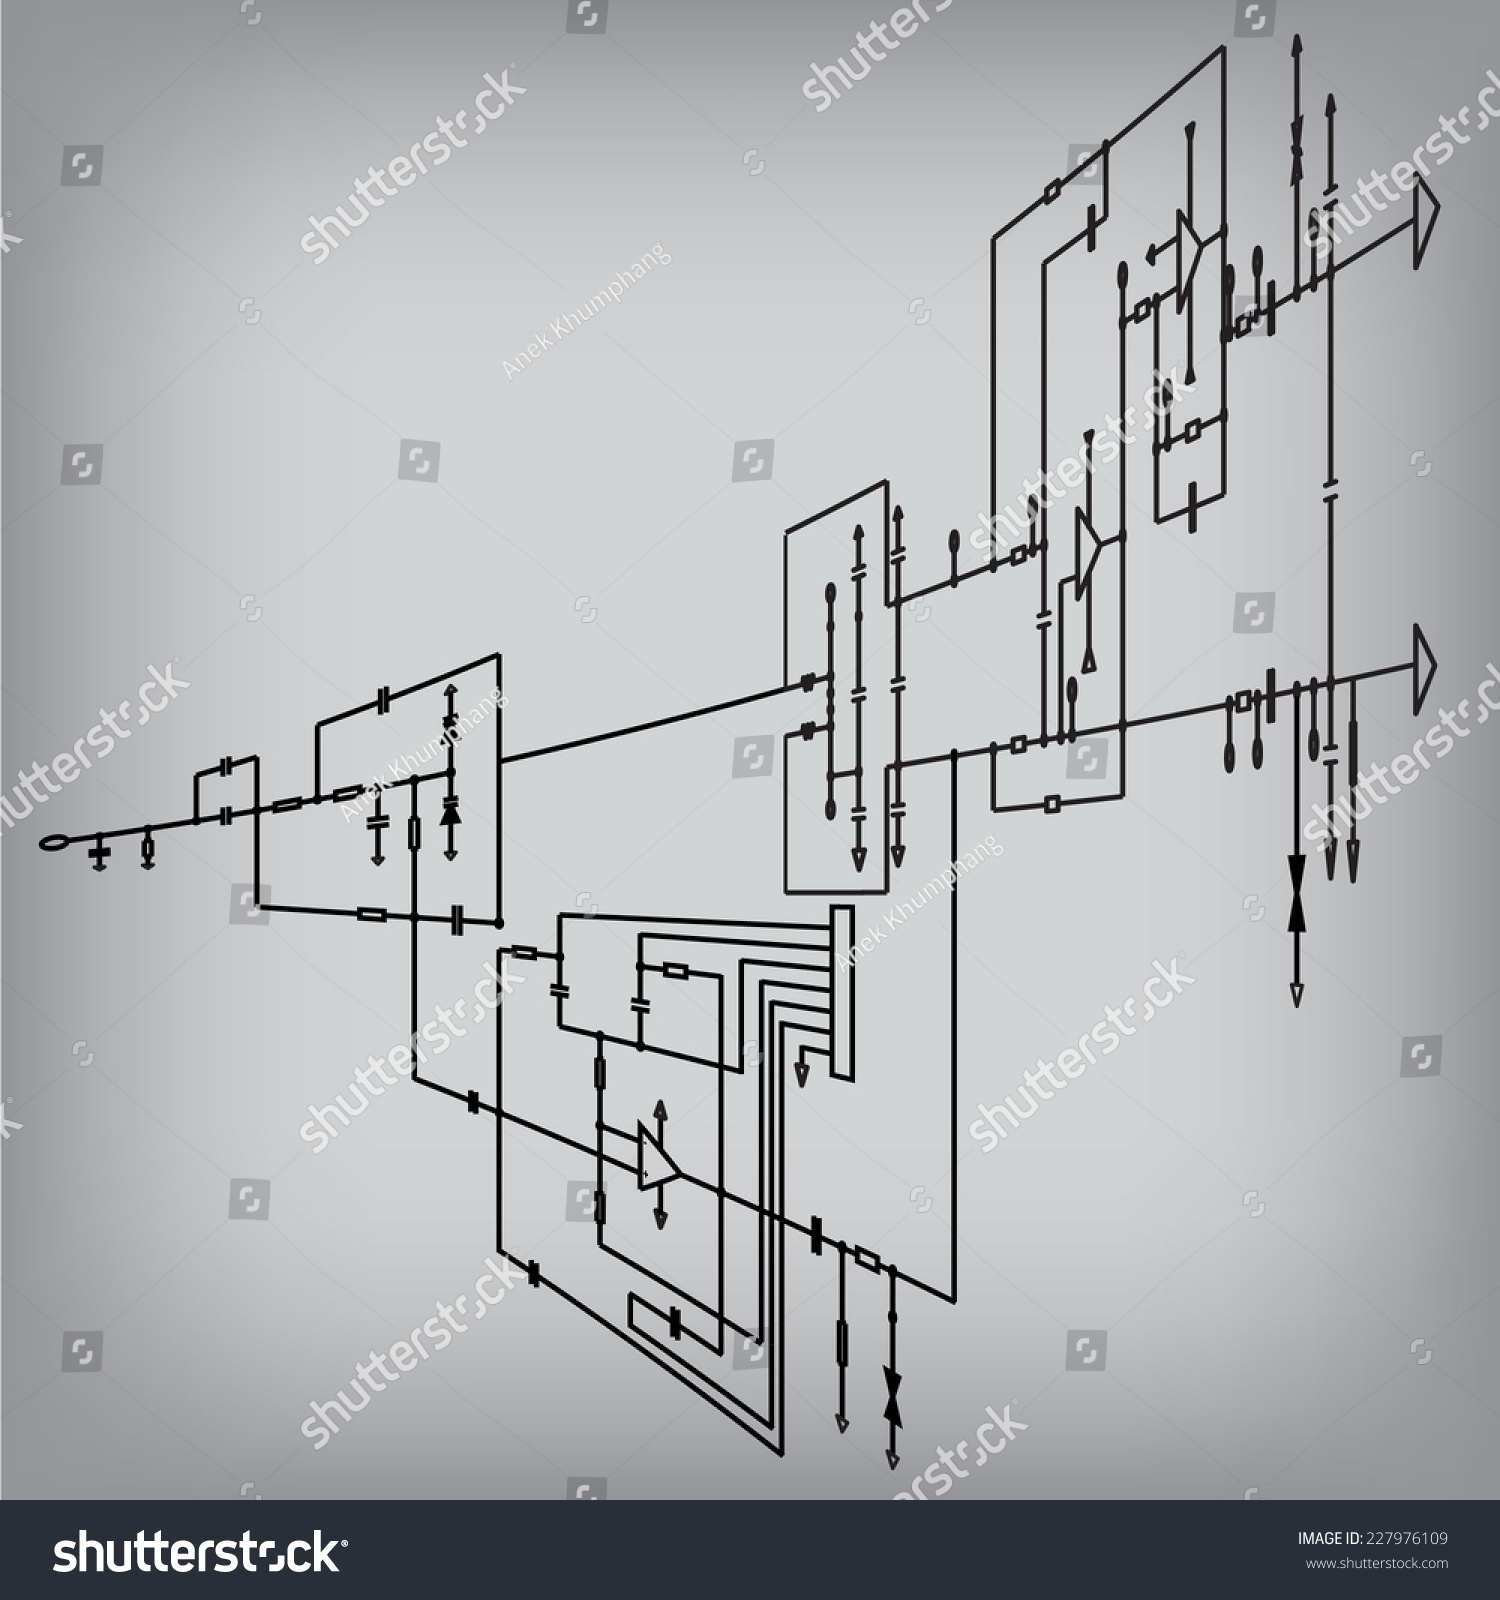 Schematic Diagram Project Electronic Circuit Graphic Stock Vector Schematics Of